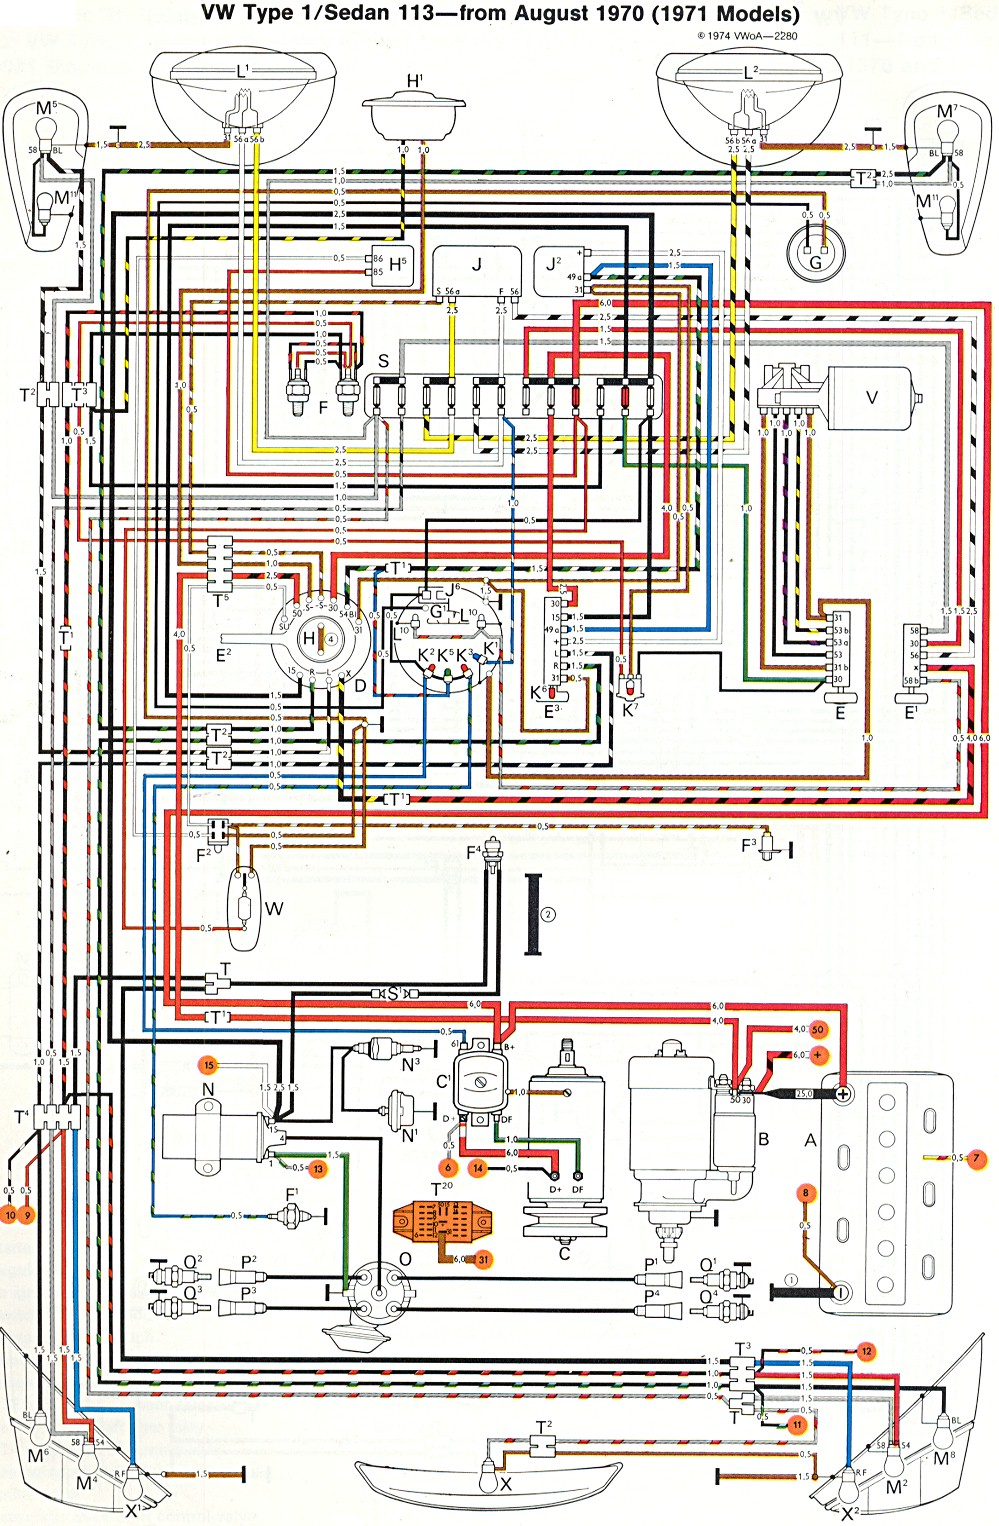 3j8qhlookingwiringdiagramwestinghousemotorstarterhtml new modelvw beetle front end diagram all image about wiring diagram and 5 91961 vw engine diagram